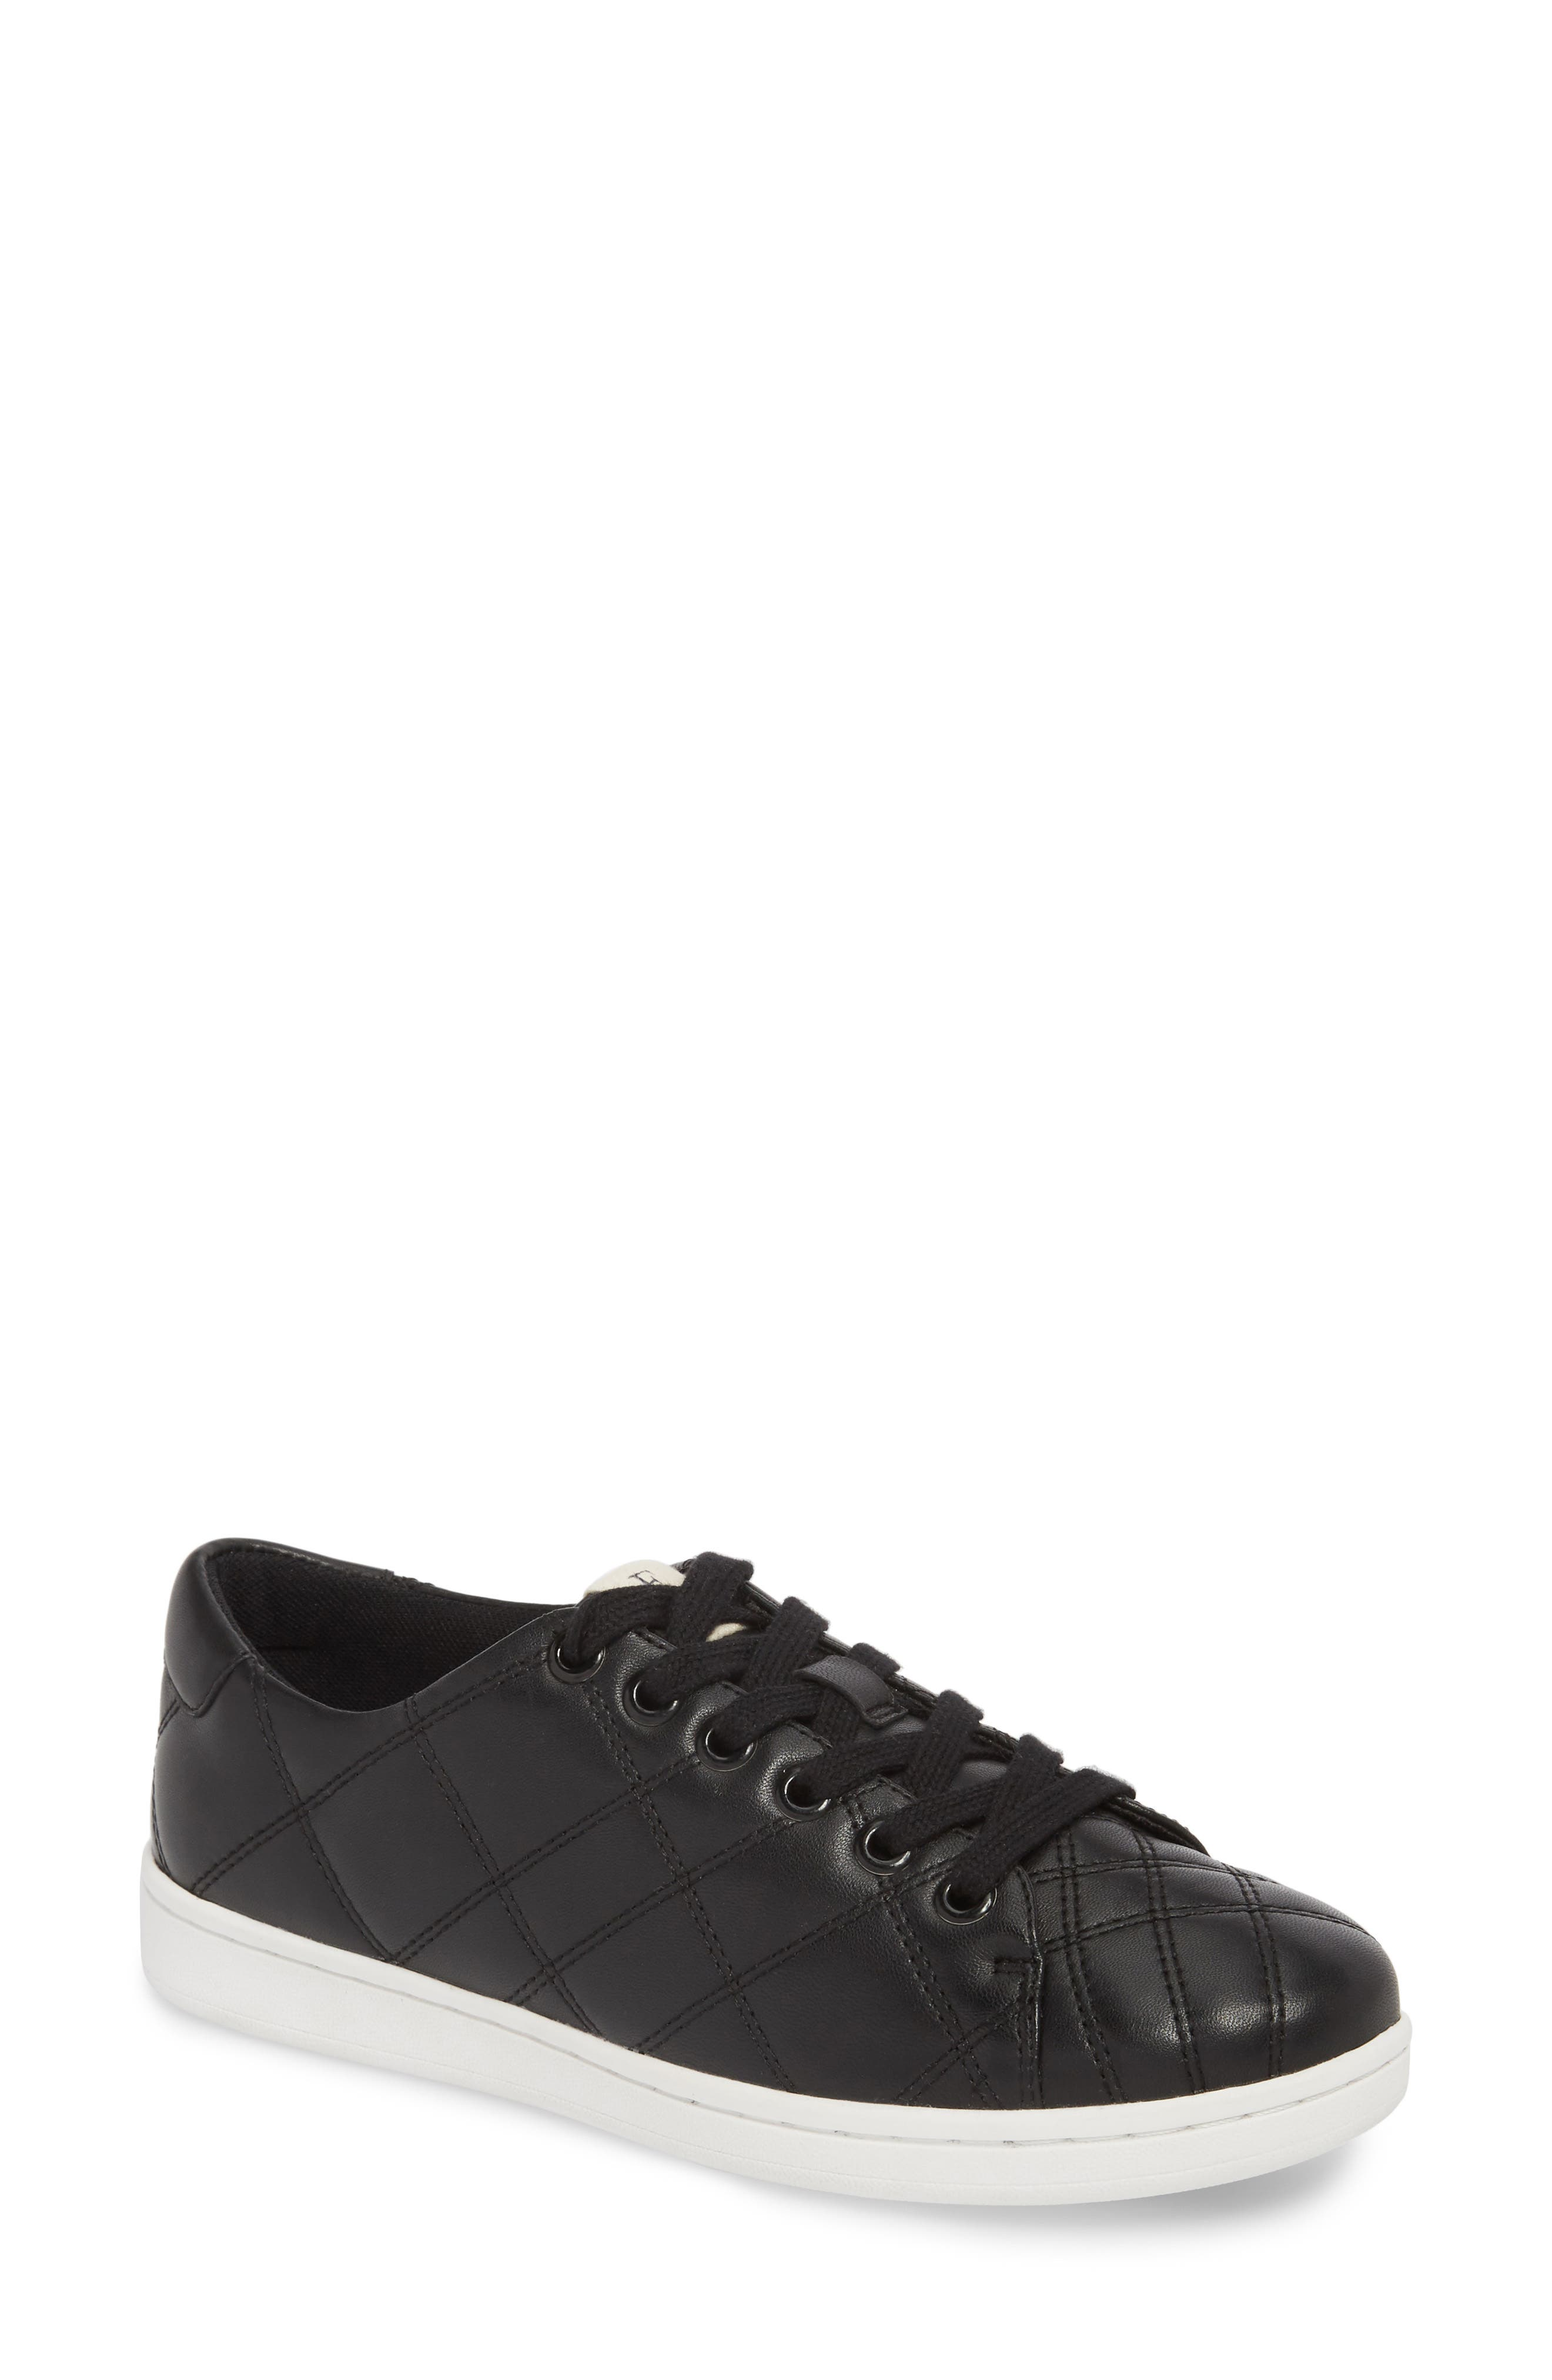 Crowley Quilted Sneaker,                             Main thumbnail 1, color,                             BLACK LEATHER